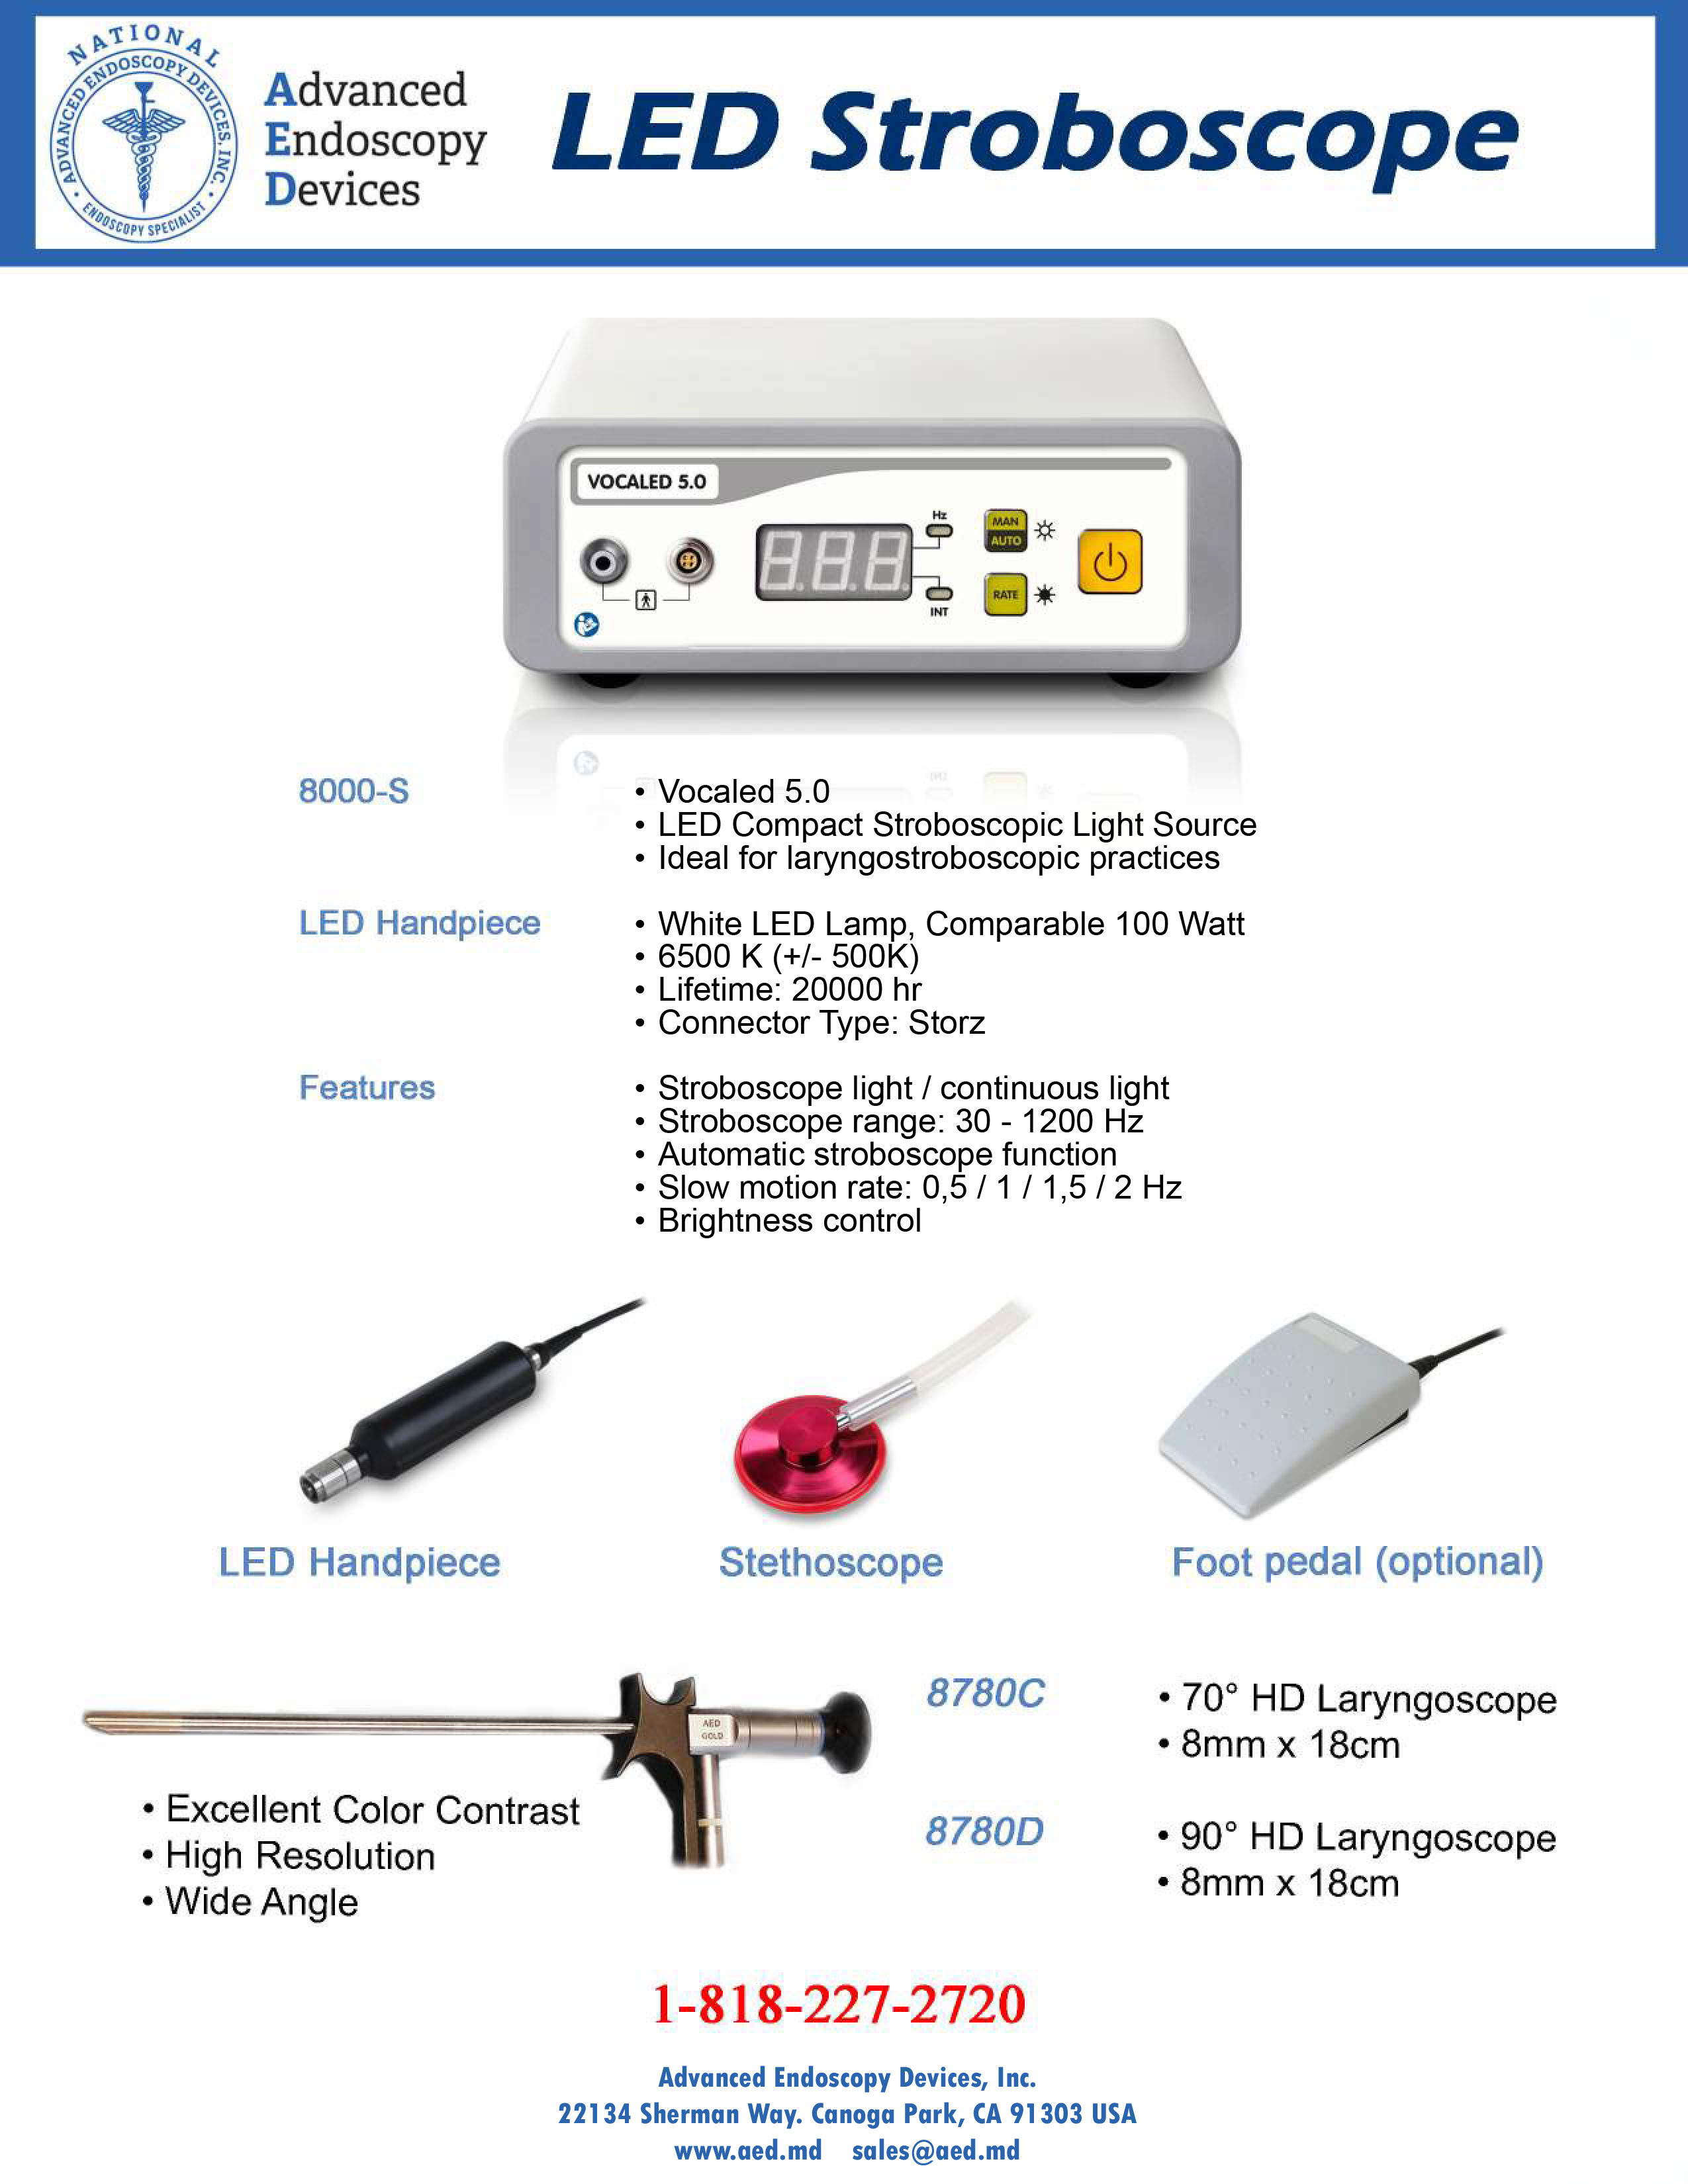 LED Stroboscope Product Page